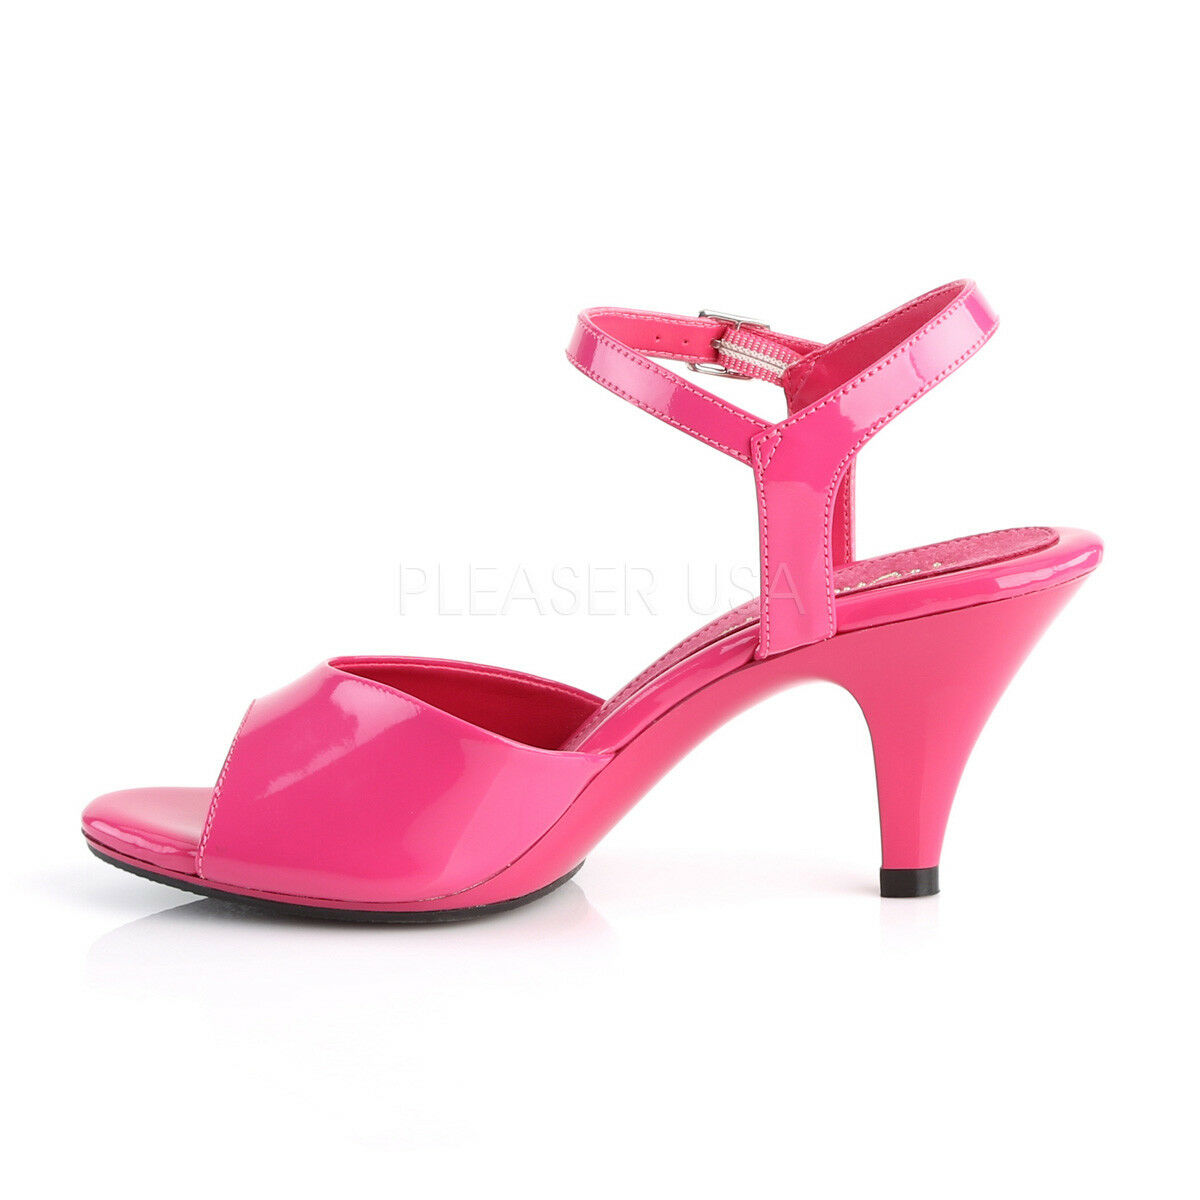 PLEASER FABULICIOUS BELLE-309 HOT PINK ANKLE PATENT ANKLE PINK STRAP SANDALS Schuhe c28cae